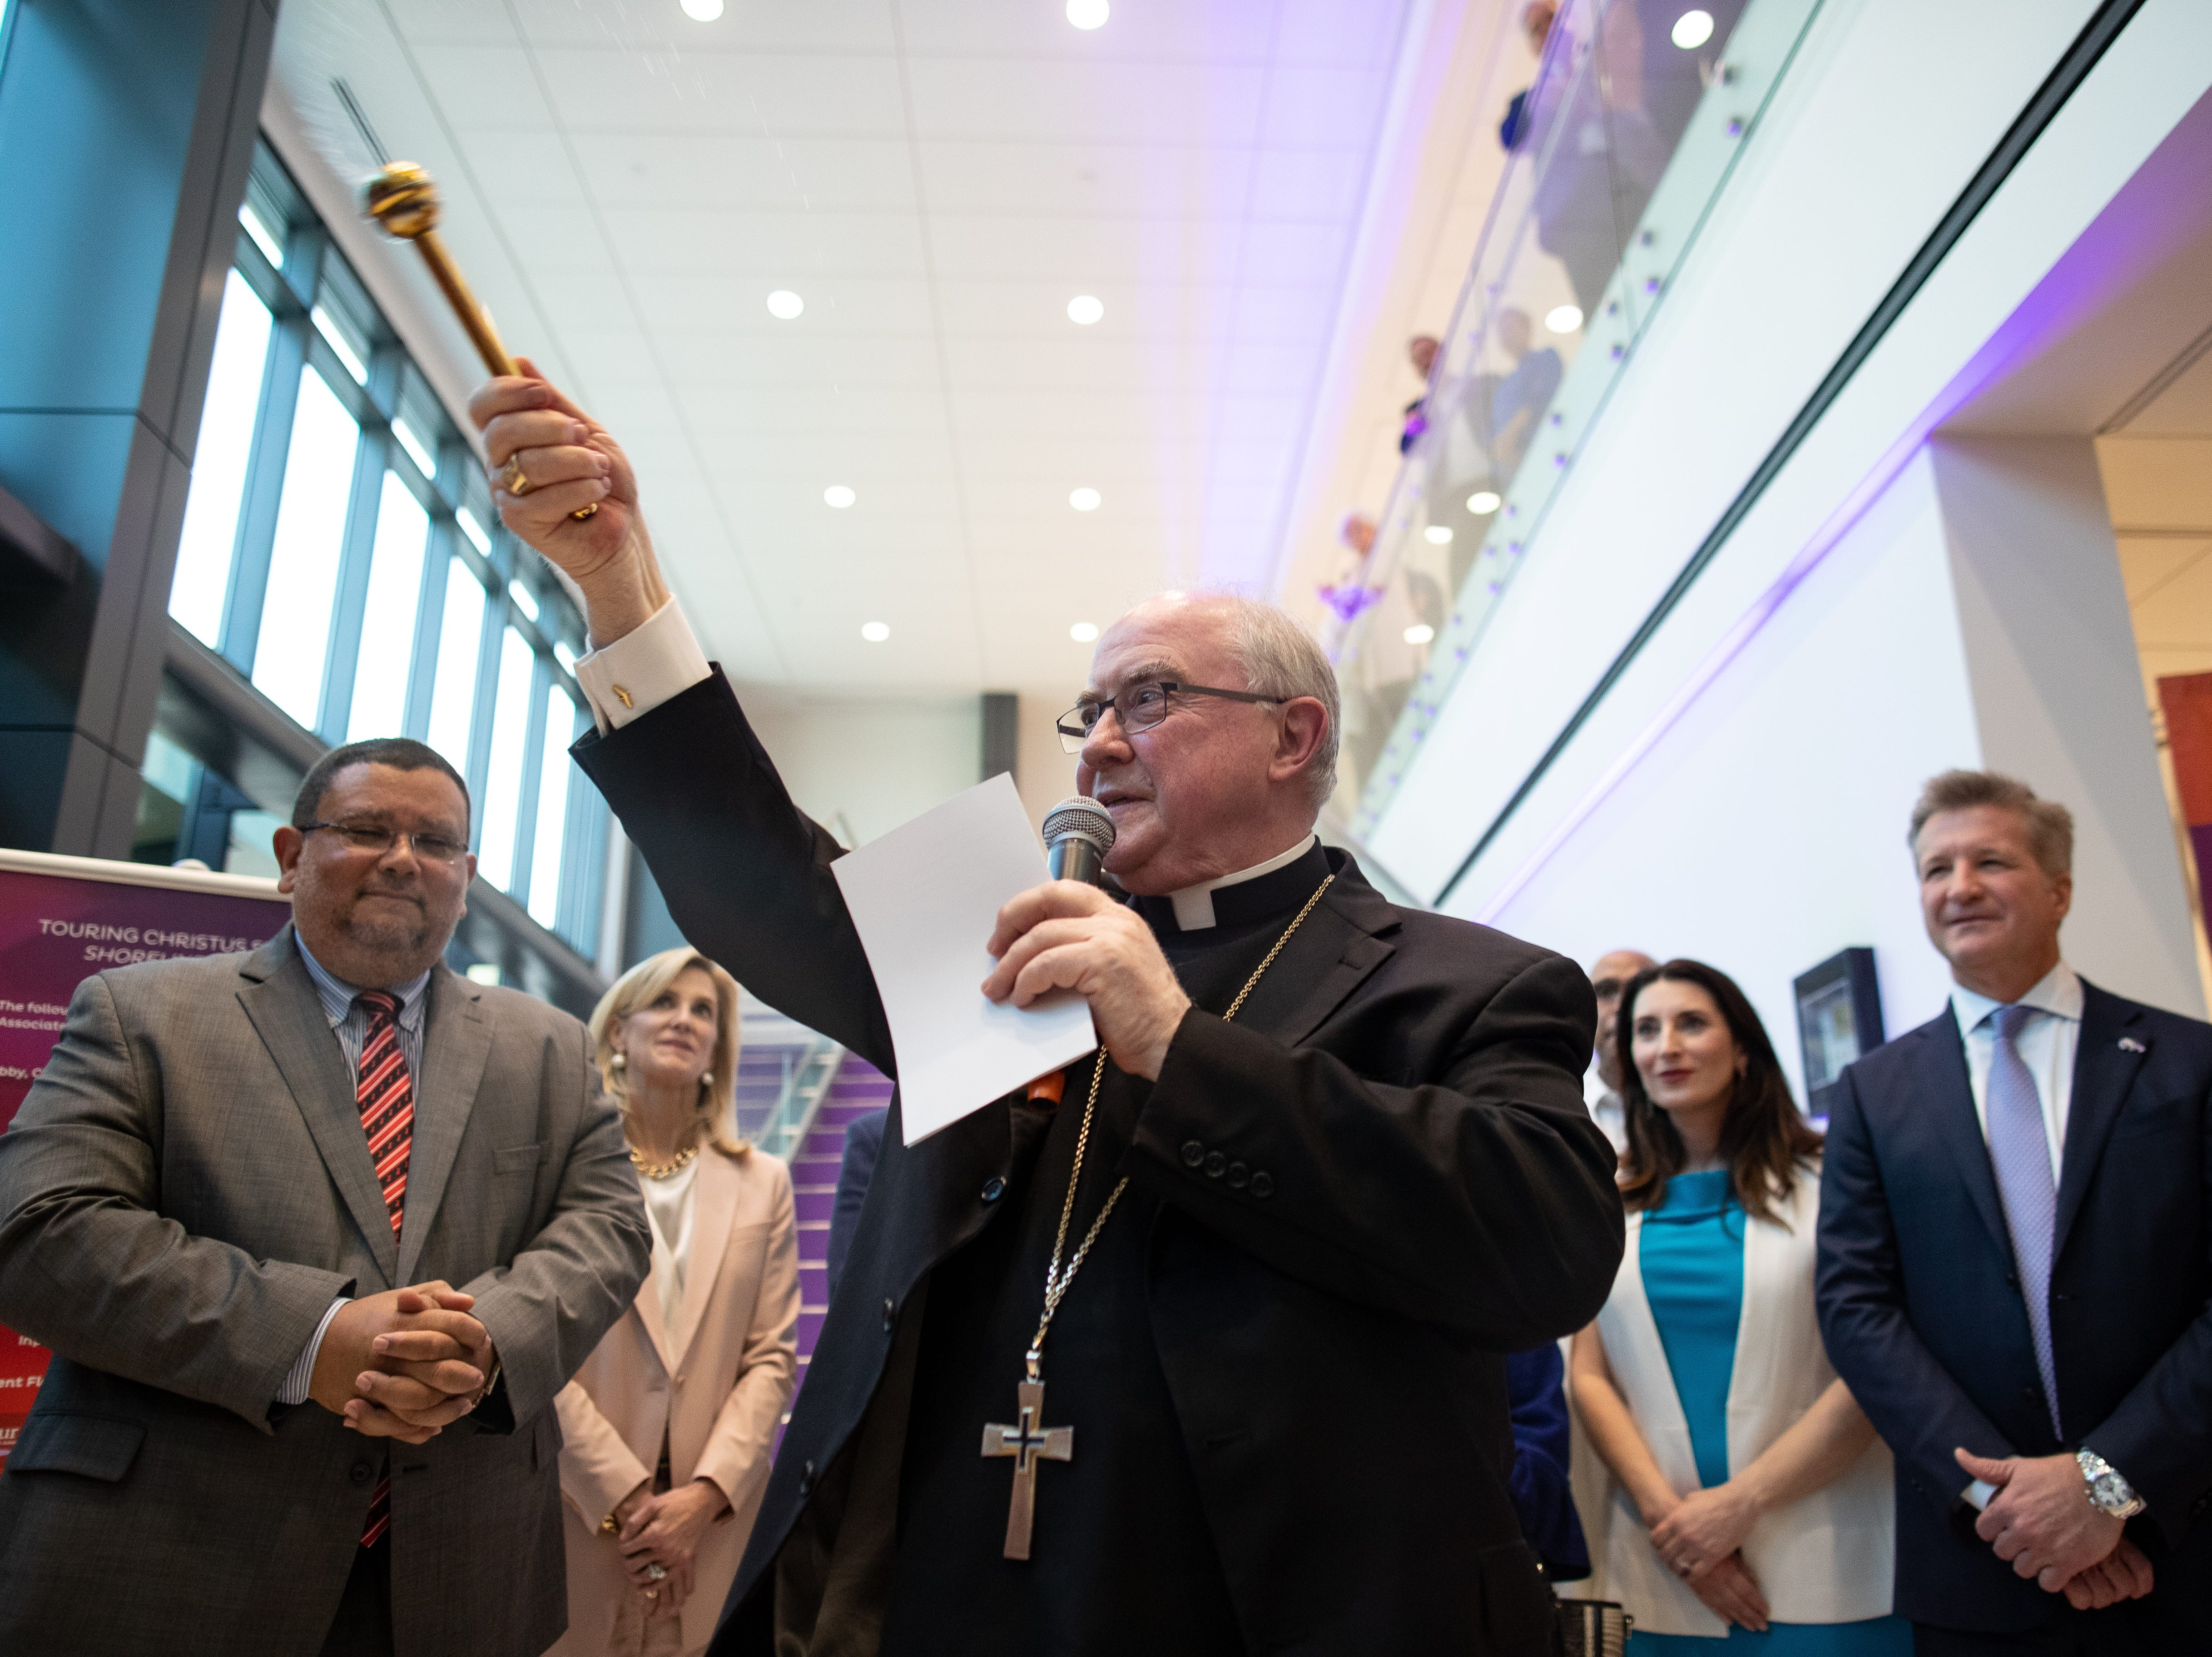 Bishop Michael Mulvey blesses CHRISTUS Spohn Heath System new $335 million North Tower at Shoreline Hospital on Thursday, March 28, 2019.